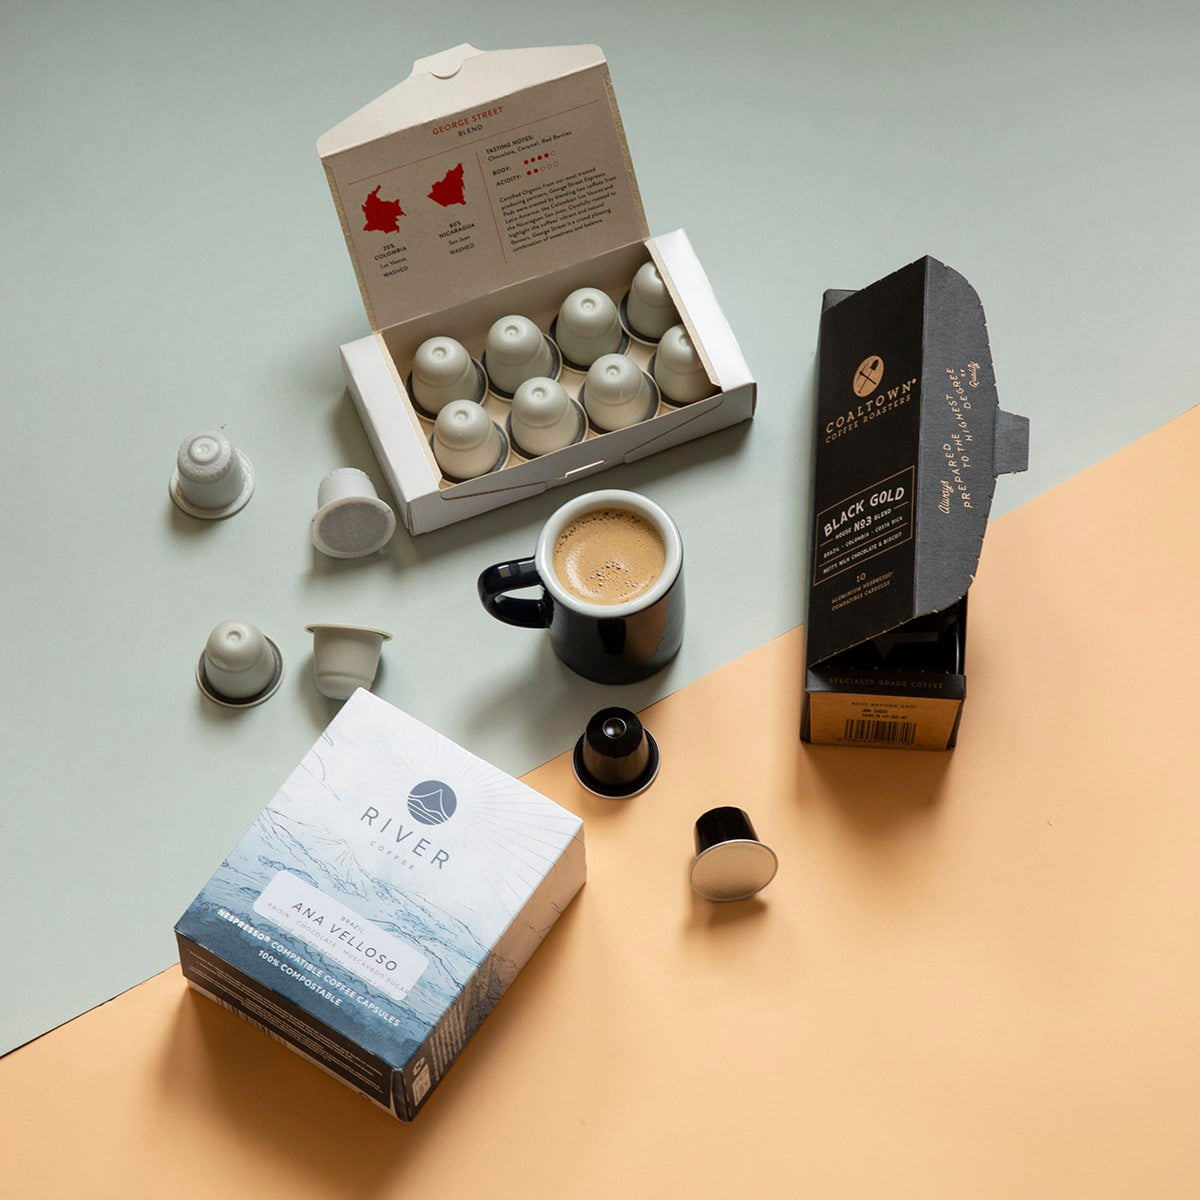 Best Coffee Pod Subscription Box - 60 Speciality Coffee Pods